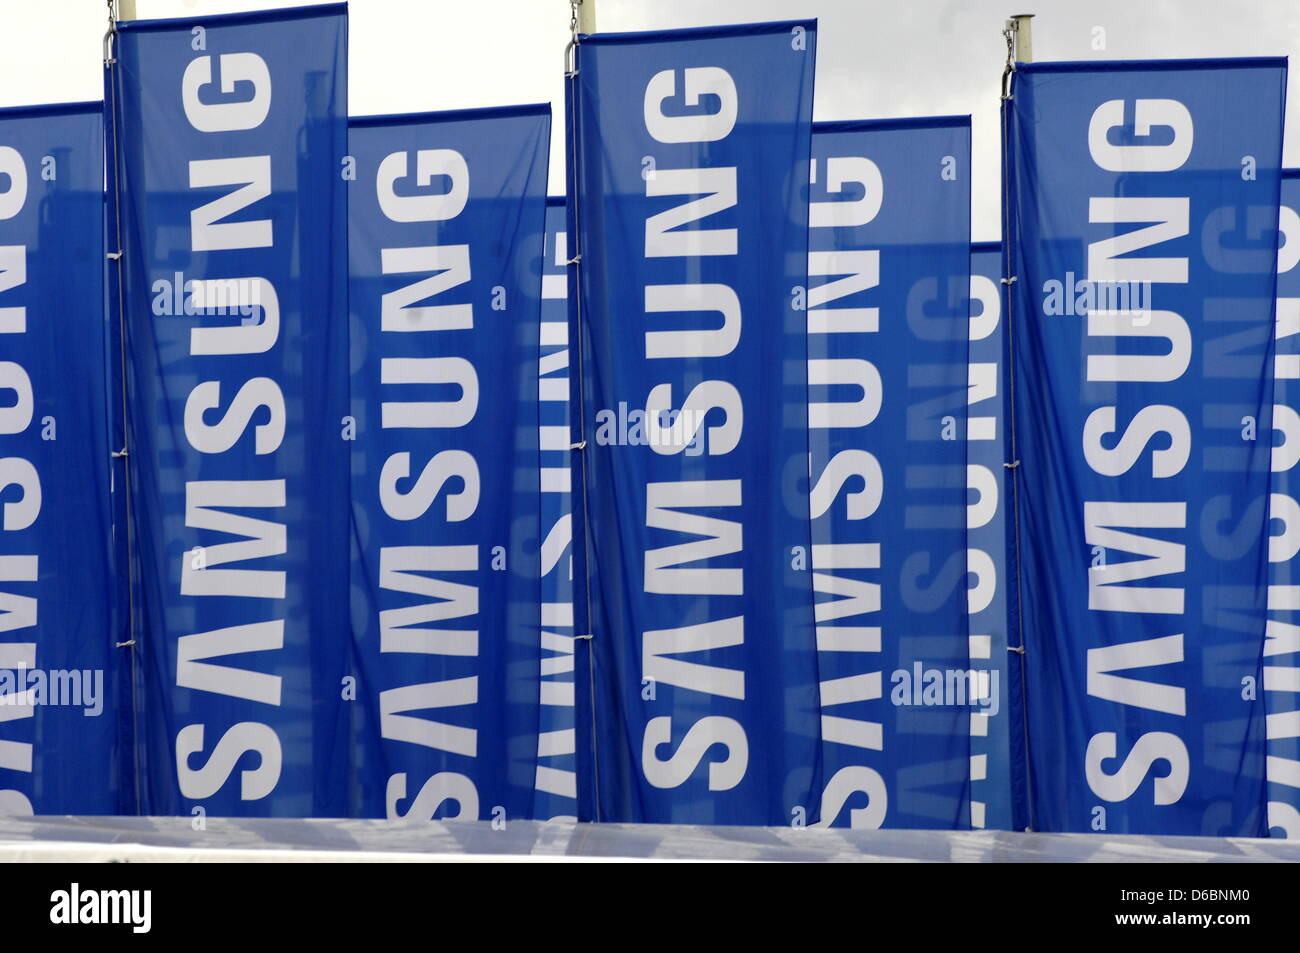 The Booth Of Korean Electronics Company Samsung At Consumer Stock Photo 55577536 Alamy